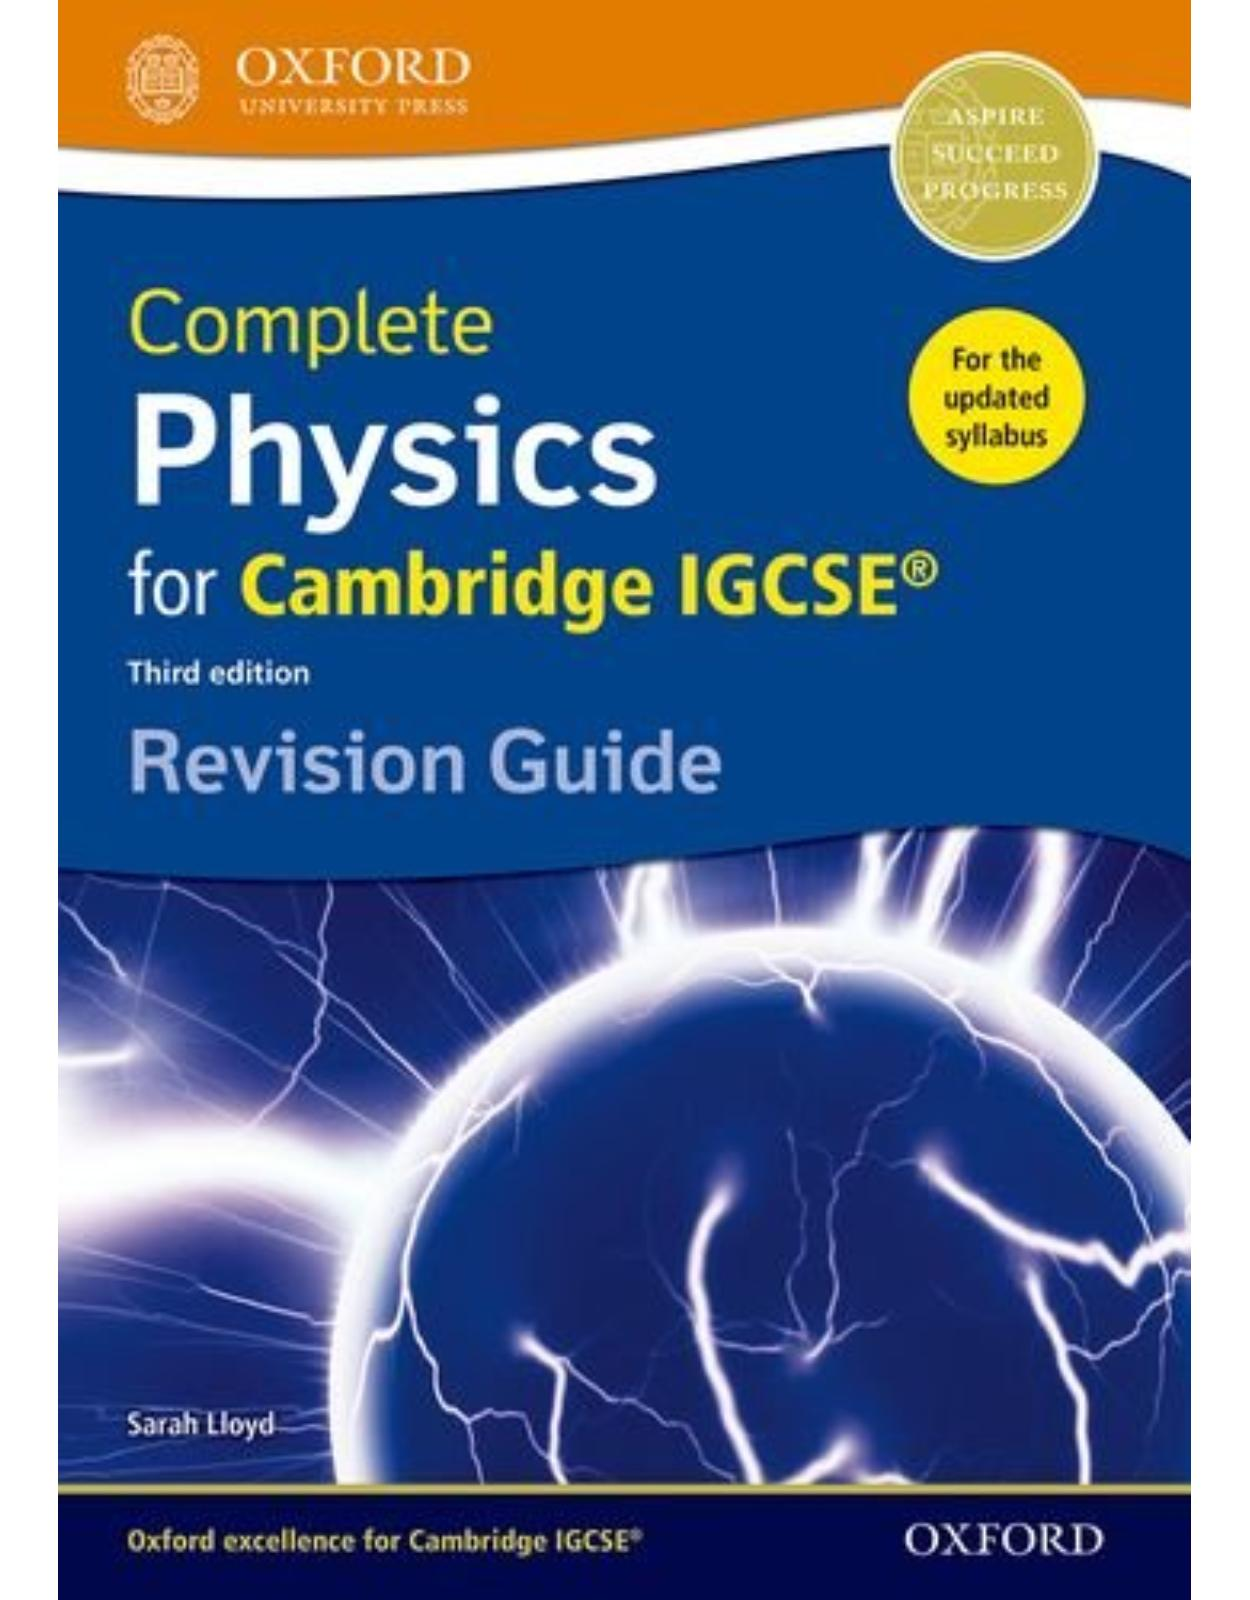 Complete Physics for Cambridge IGCSE ® Revision Guide (Igcse Revision Guides)